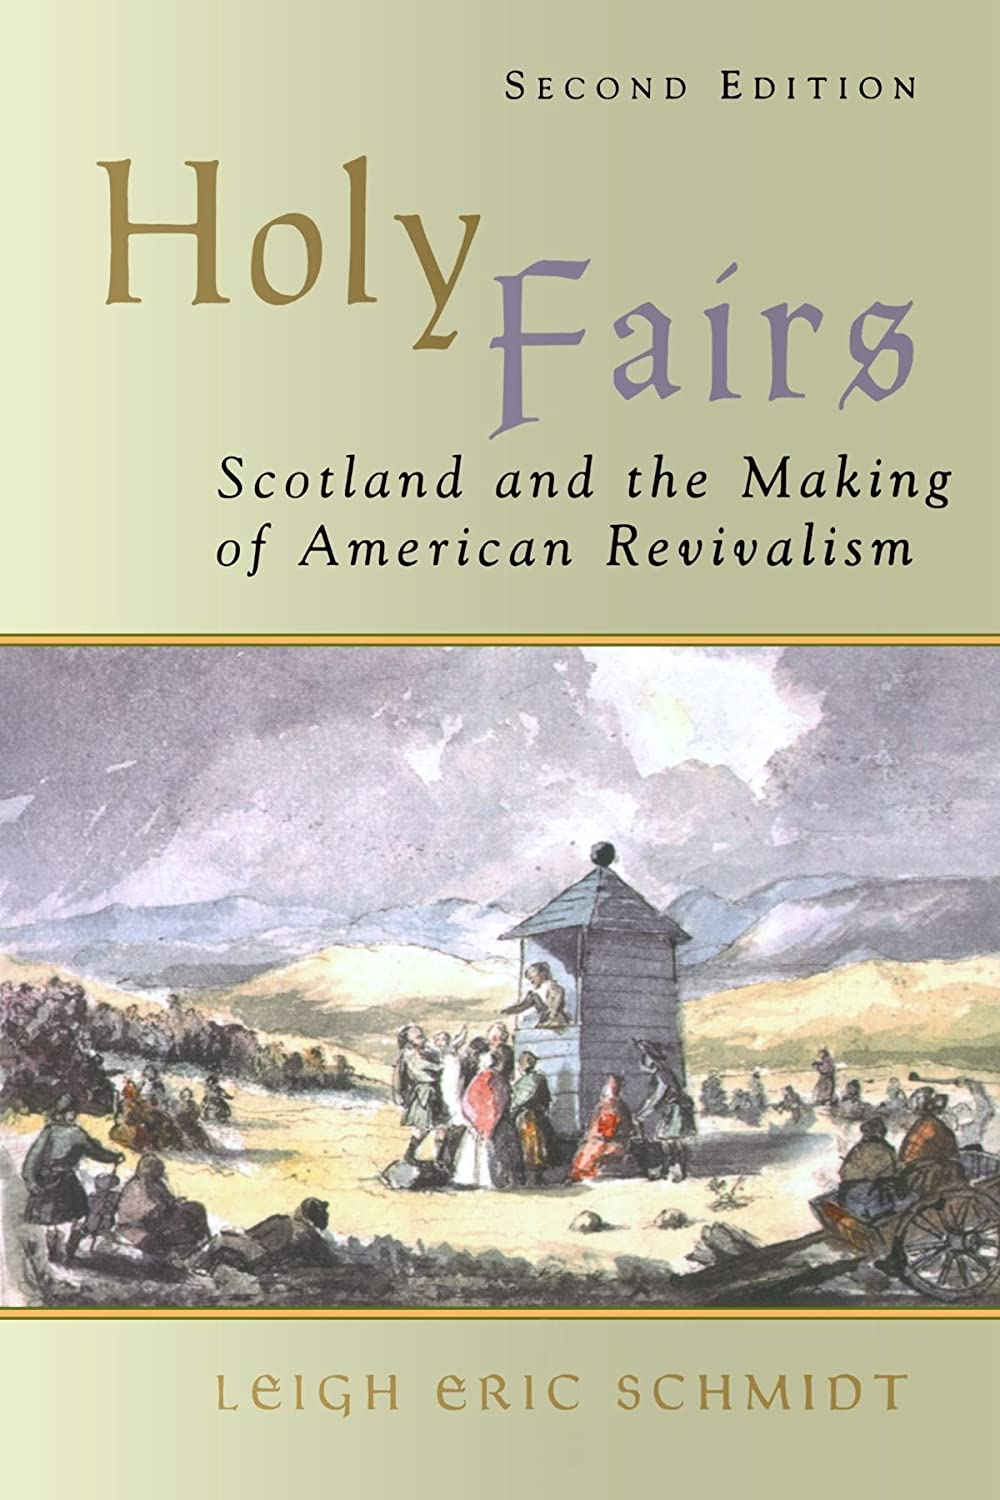 Holy Fairs: Scotland and the Making of American Revivalism Mr. Leigh Eric Schmidt